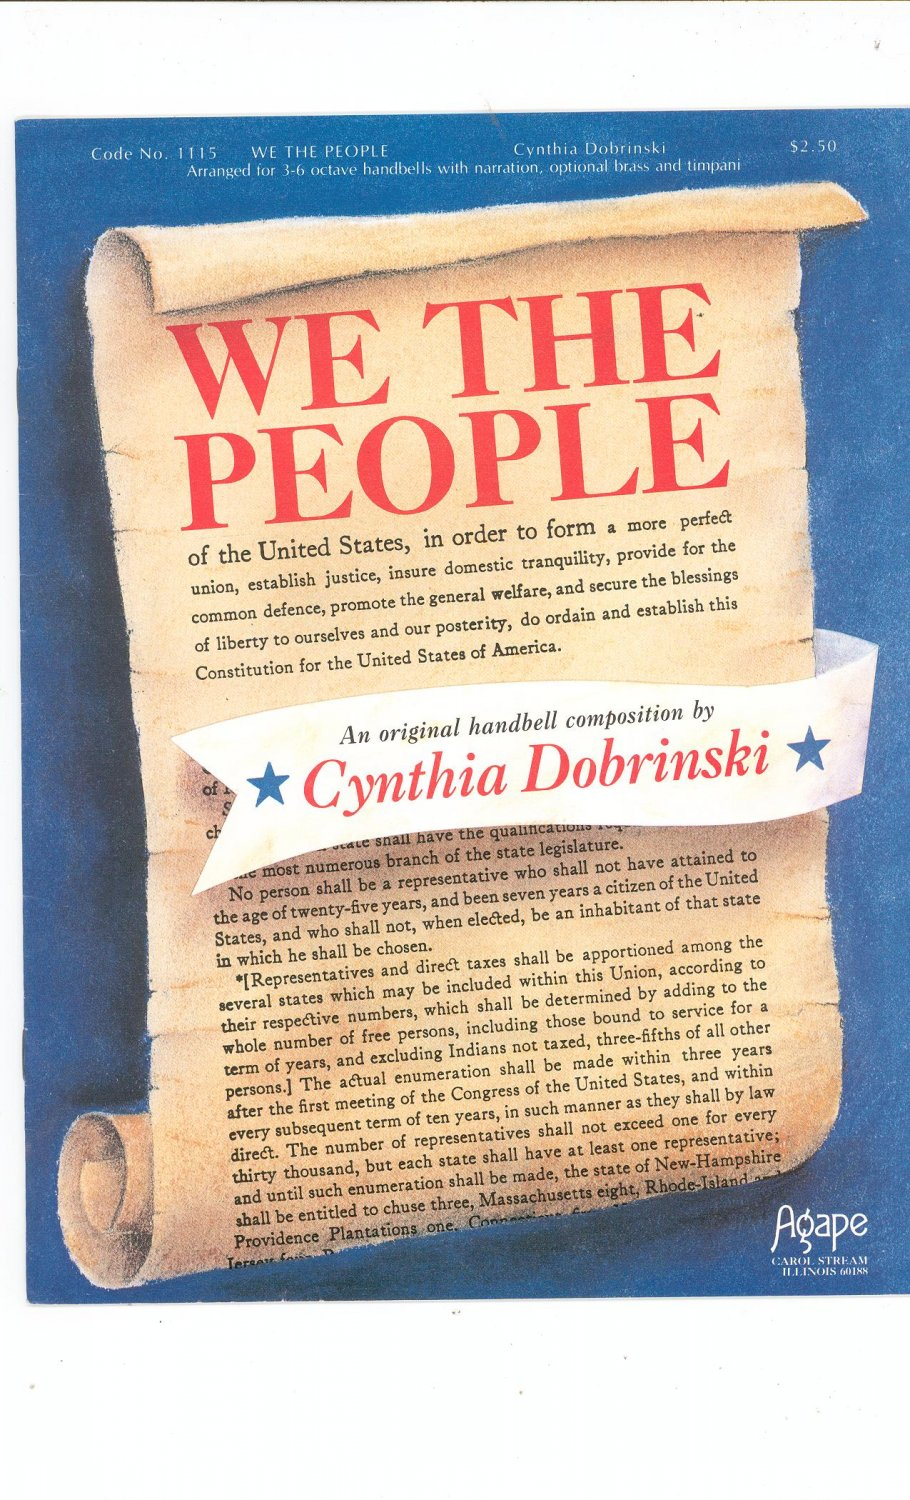 We The People By Cynthia Dobrinski Handbell Composition